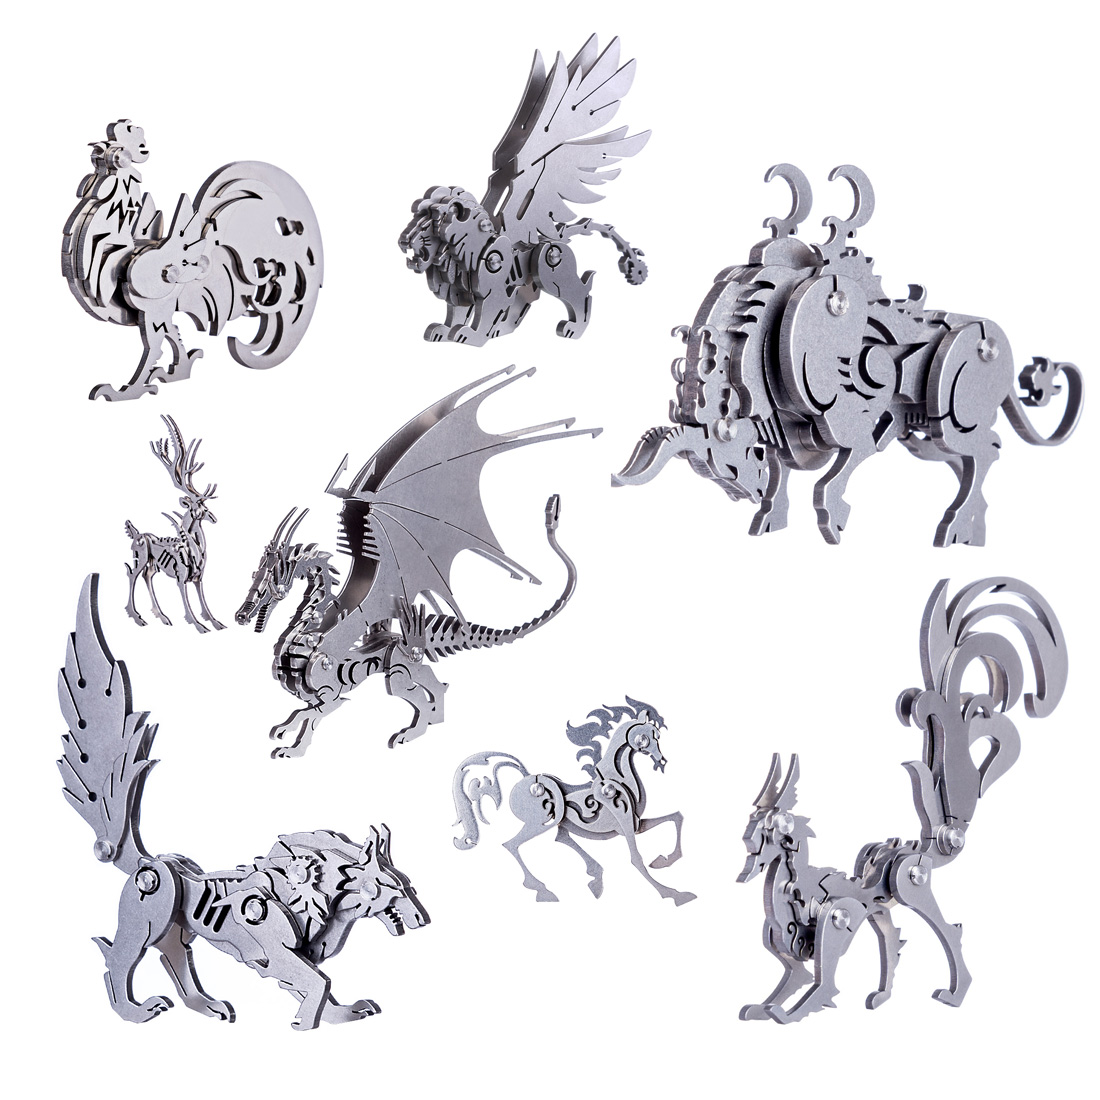 DIY Assembled Model Kit 3D Stainless Steel Assembled Detachable Animal Model Puzzle Ornaments Wild Wolf Cattle Dragon Manticore